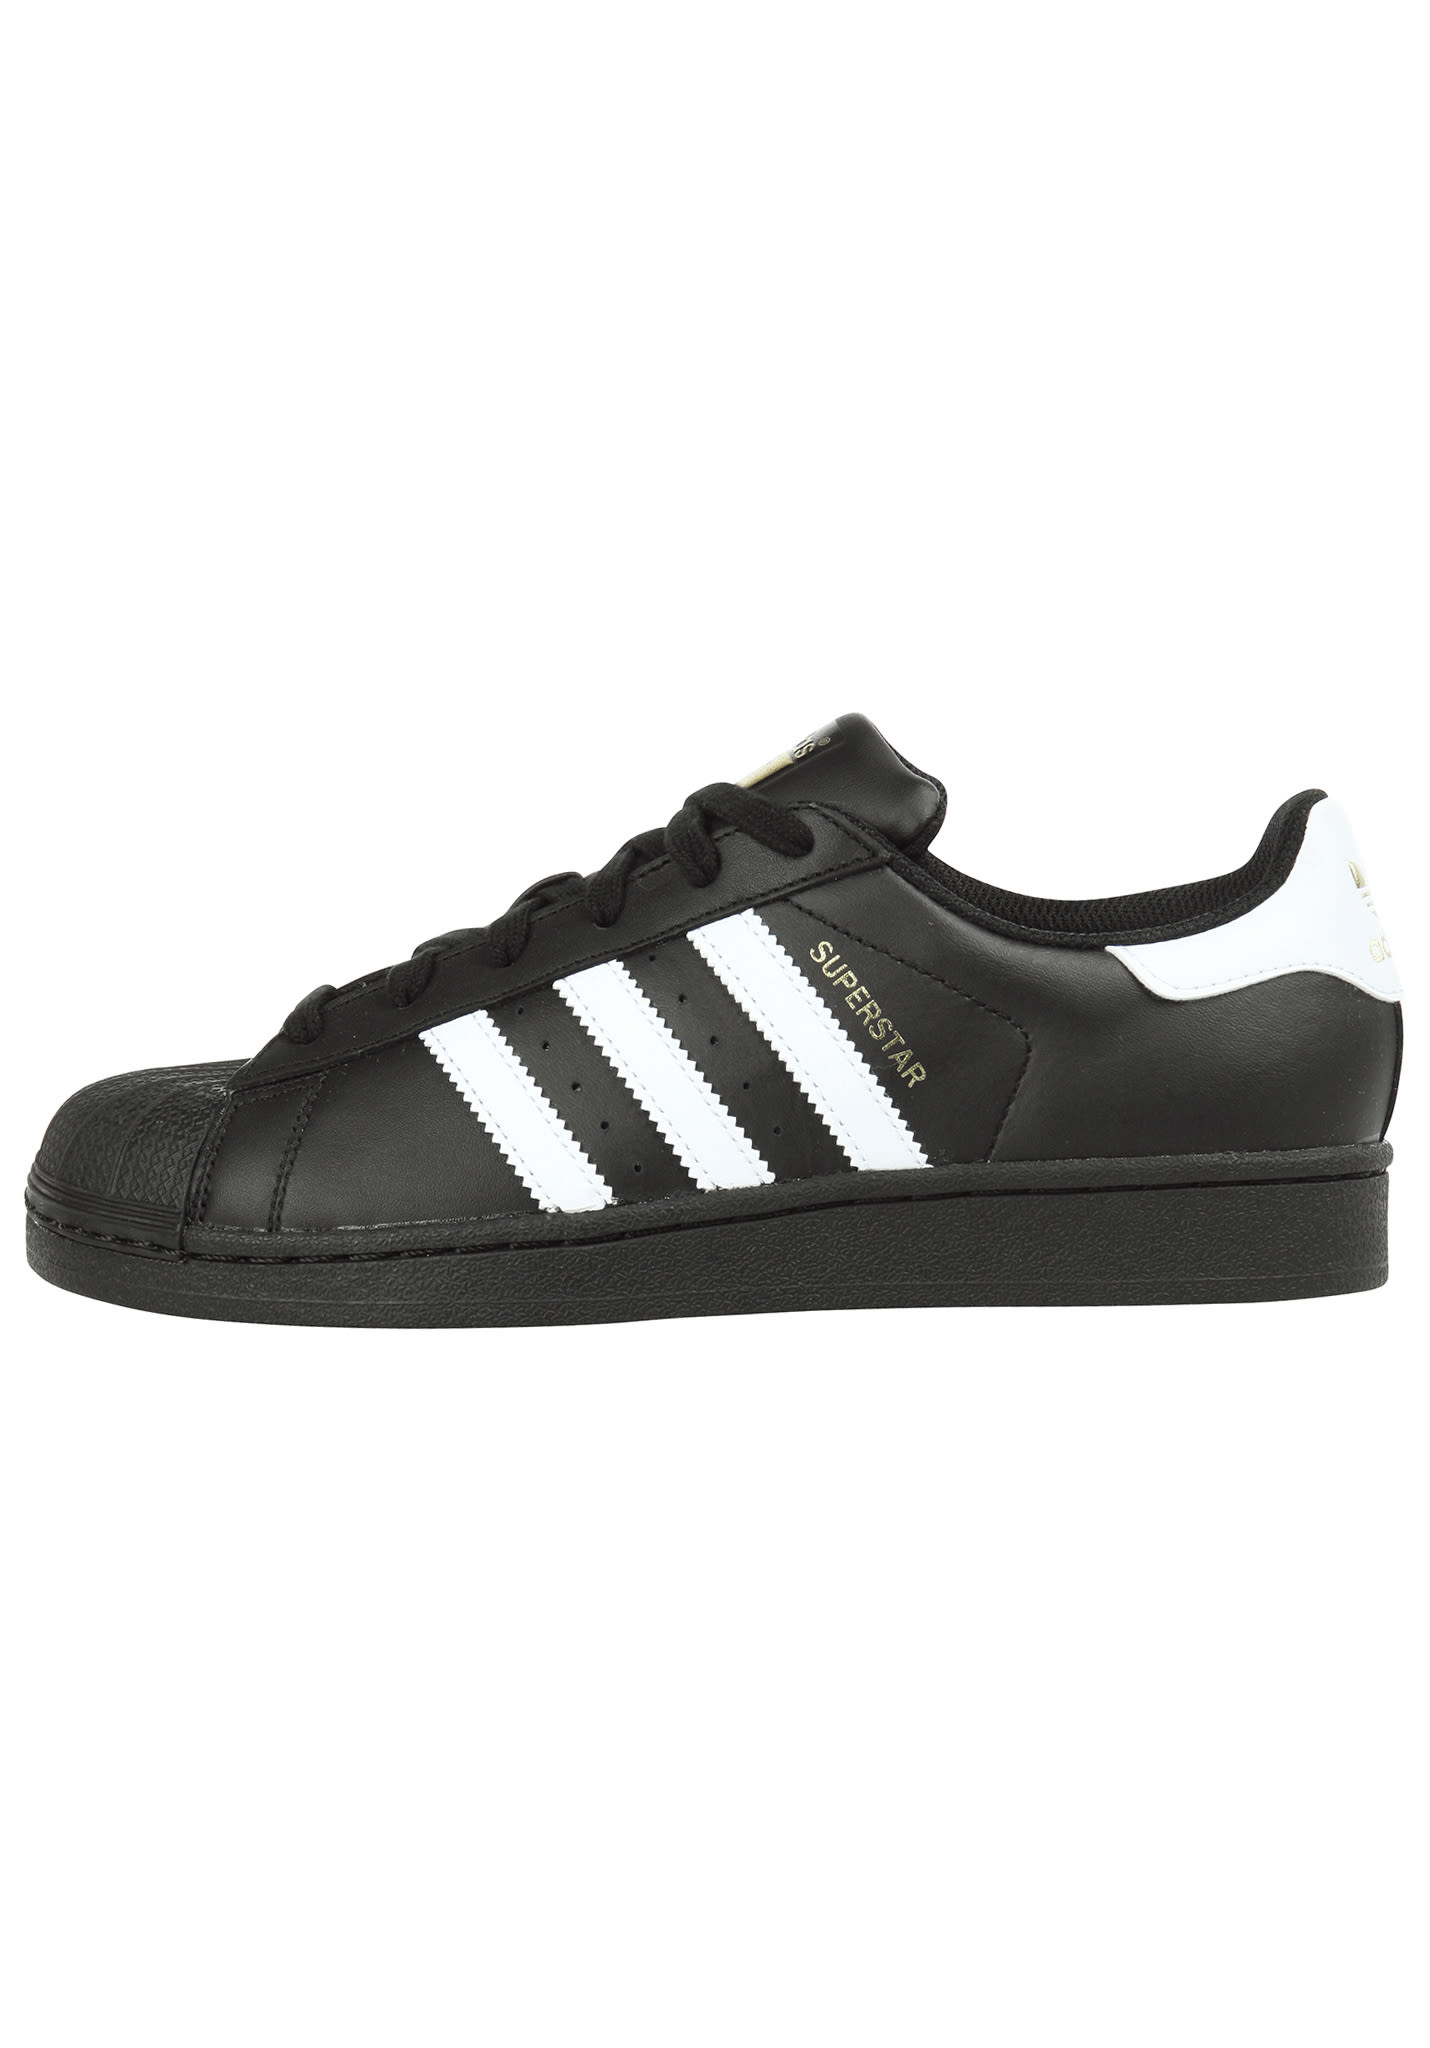 pretty cool fresh styles cute ADIDAS ORIGINALS Superstar - Sneakers - Black